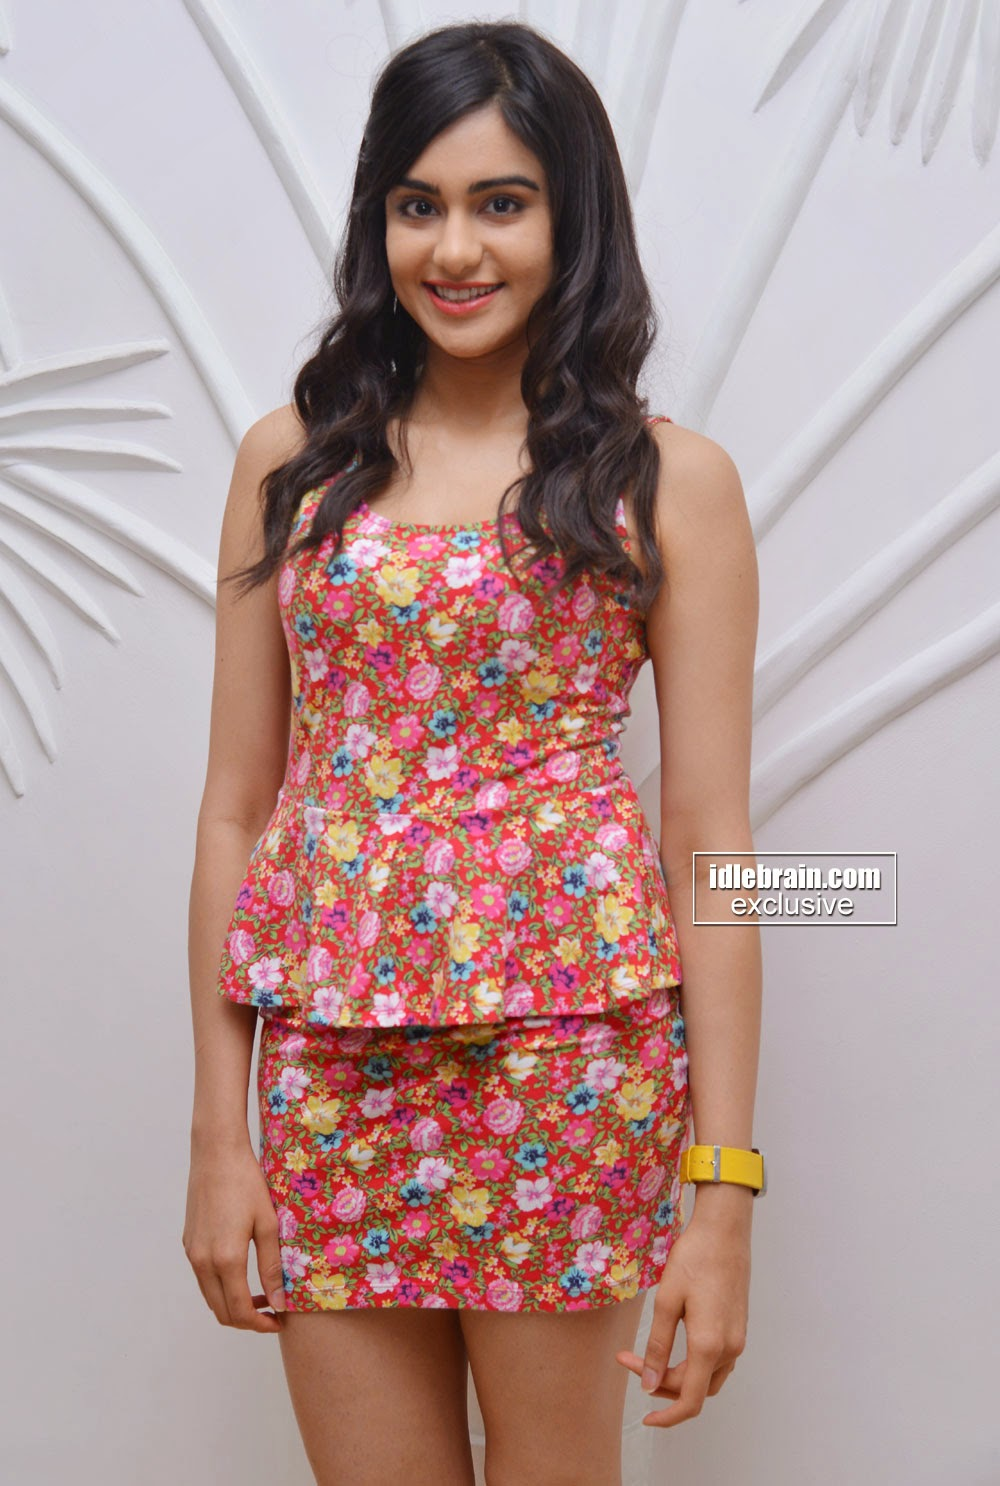 Adah Sharma at the announcment of signing up as the brand ambassador of Cell Point